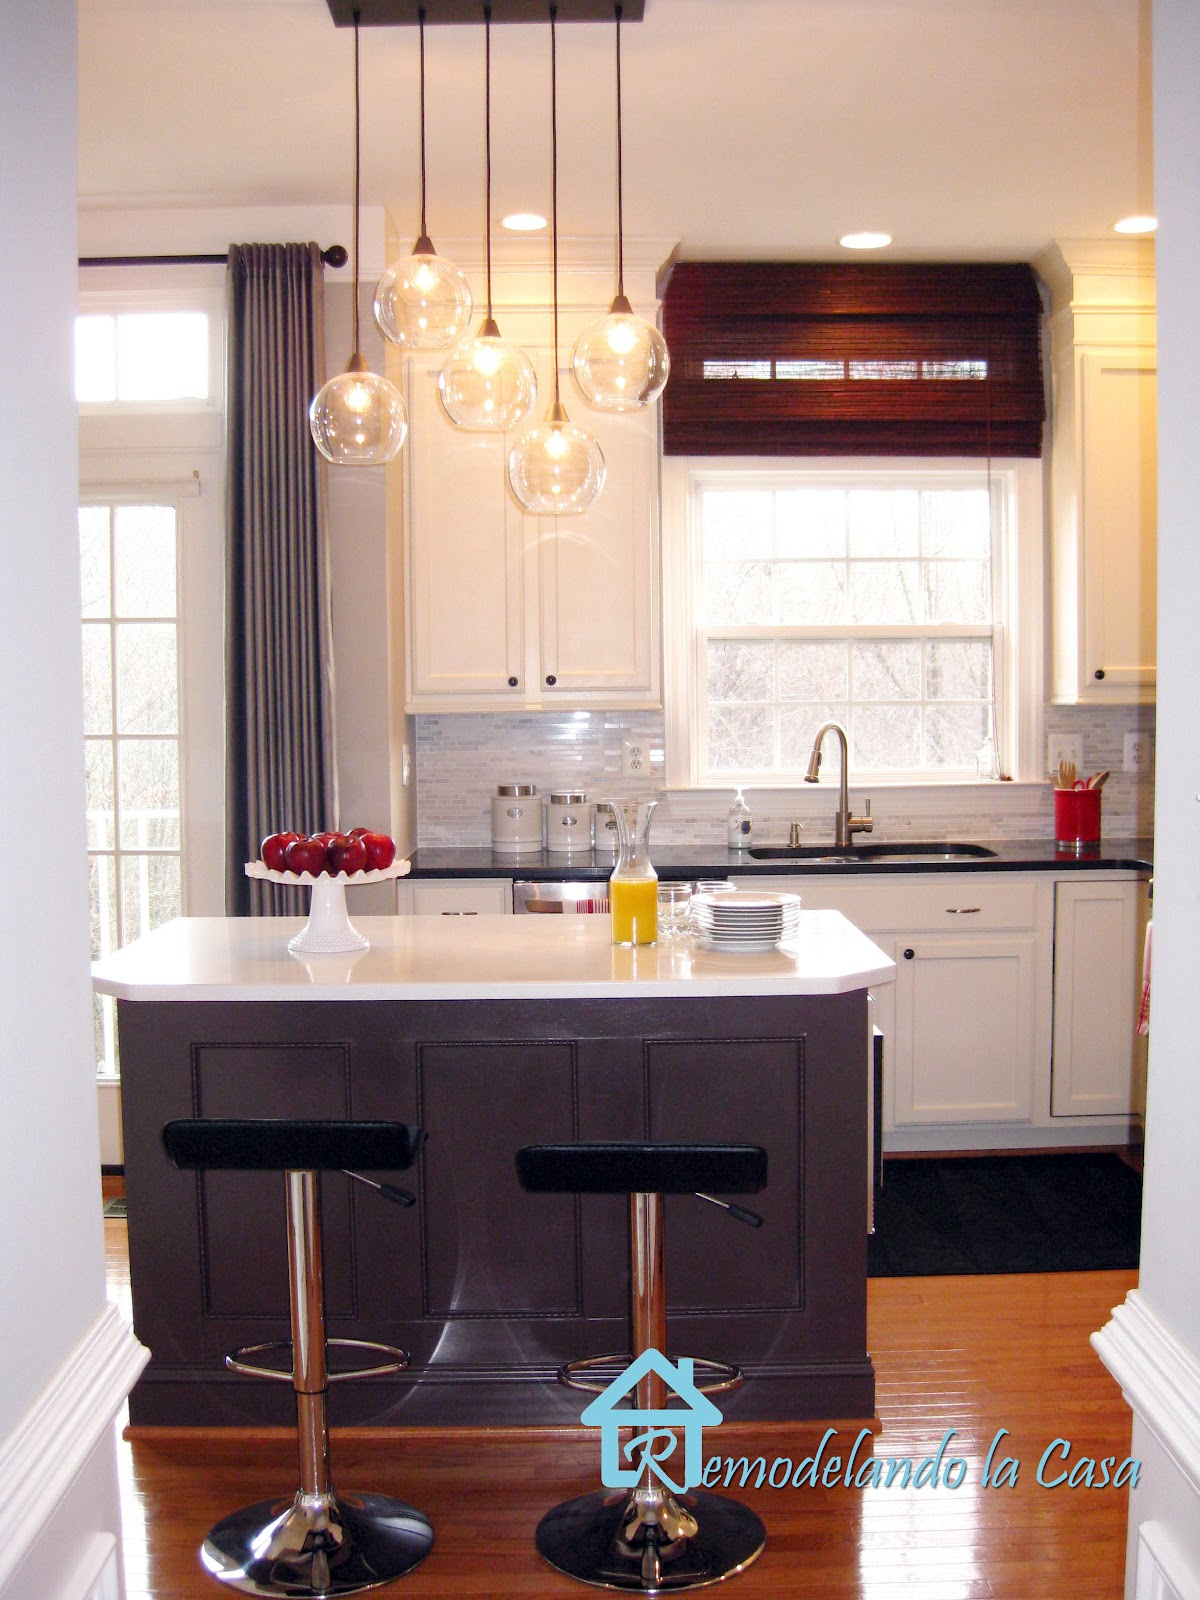 Kitchen Remodeling Projects Home Depot Makeover Remodelando La Casa